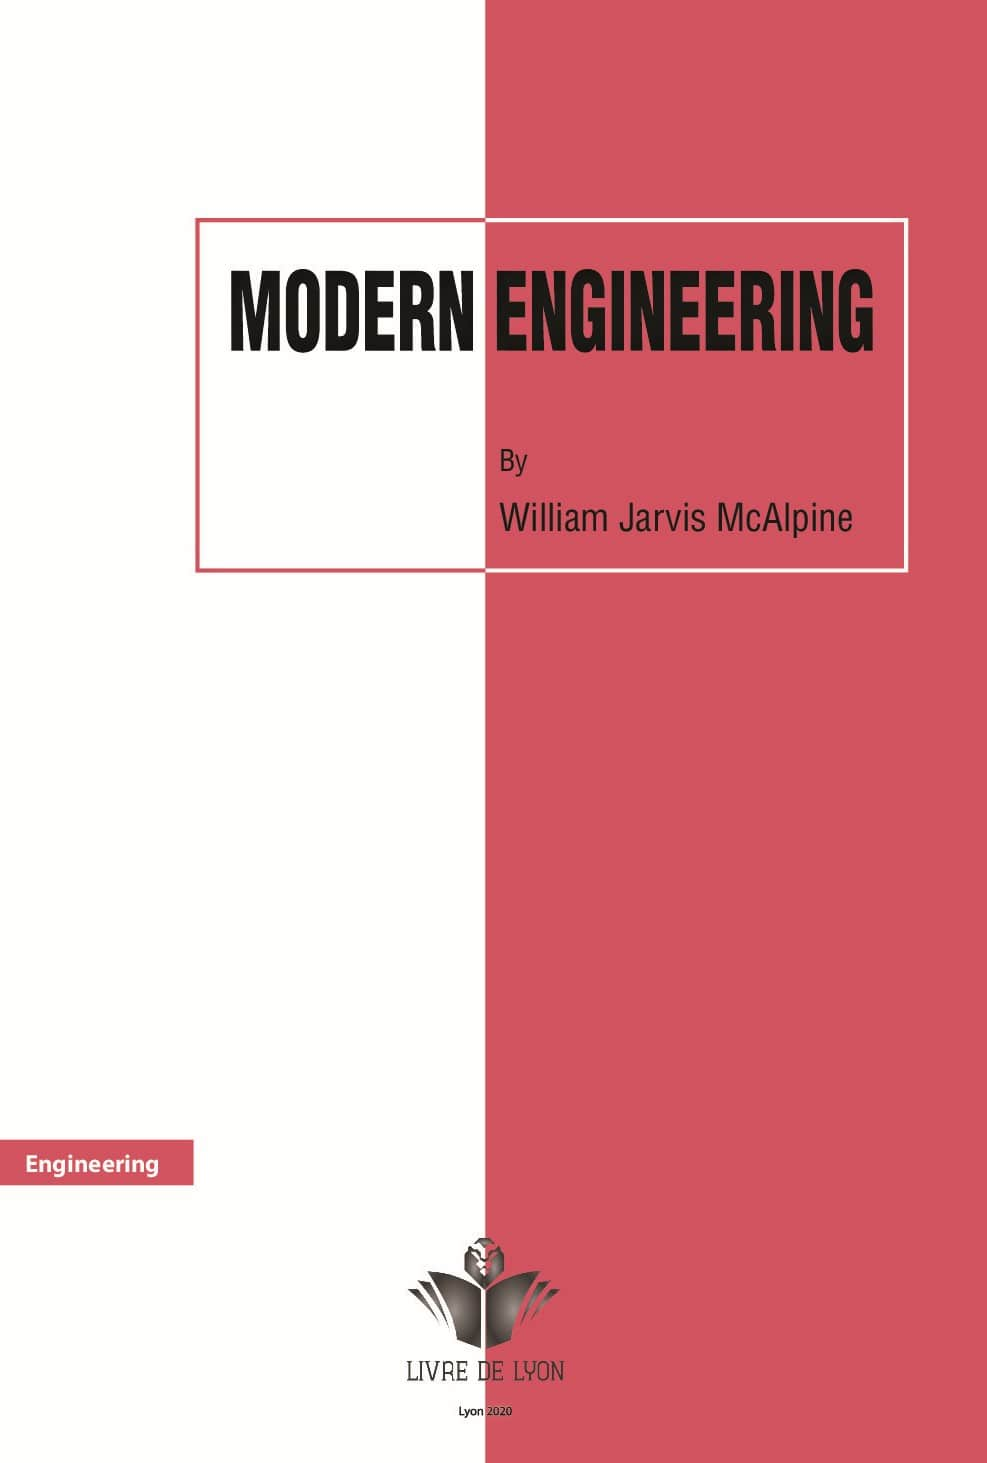 Modern Engineering